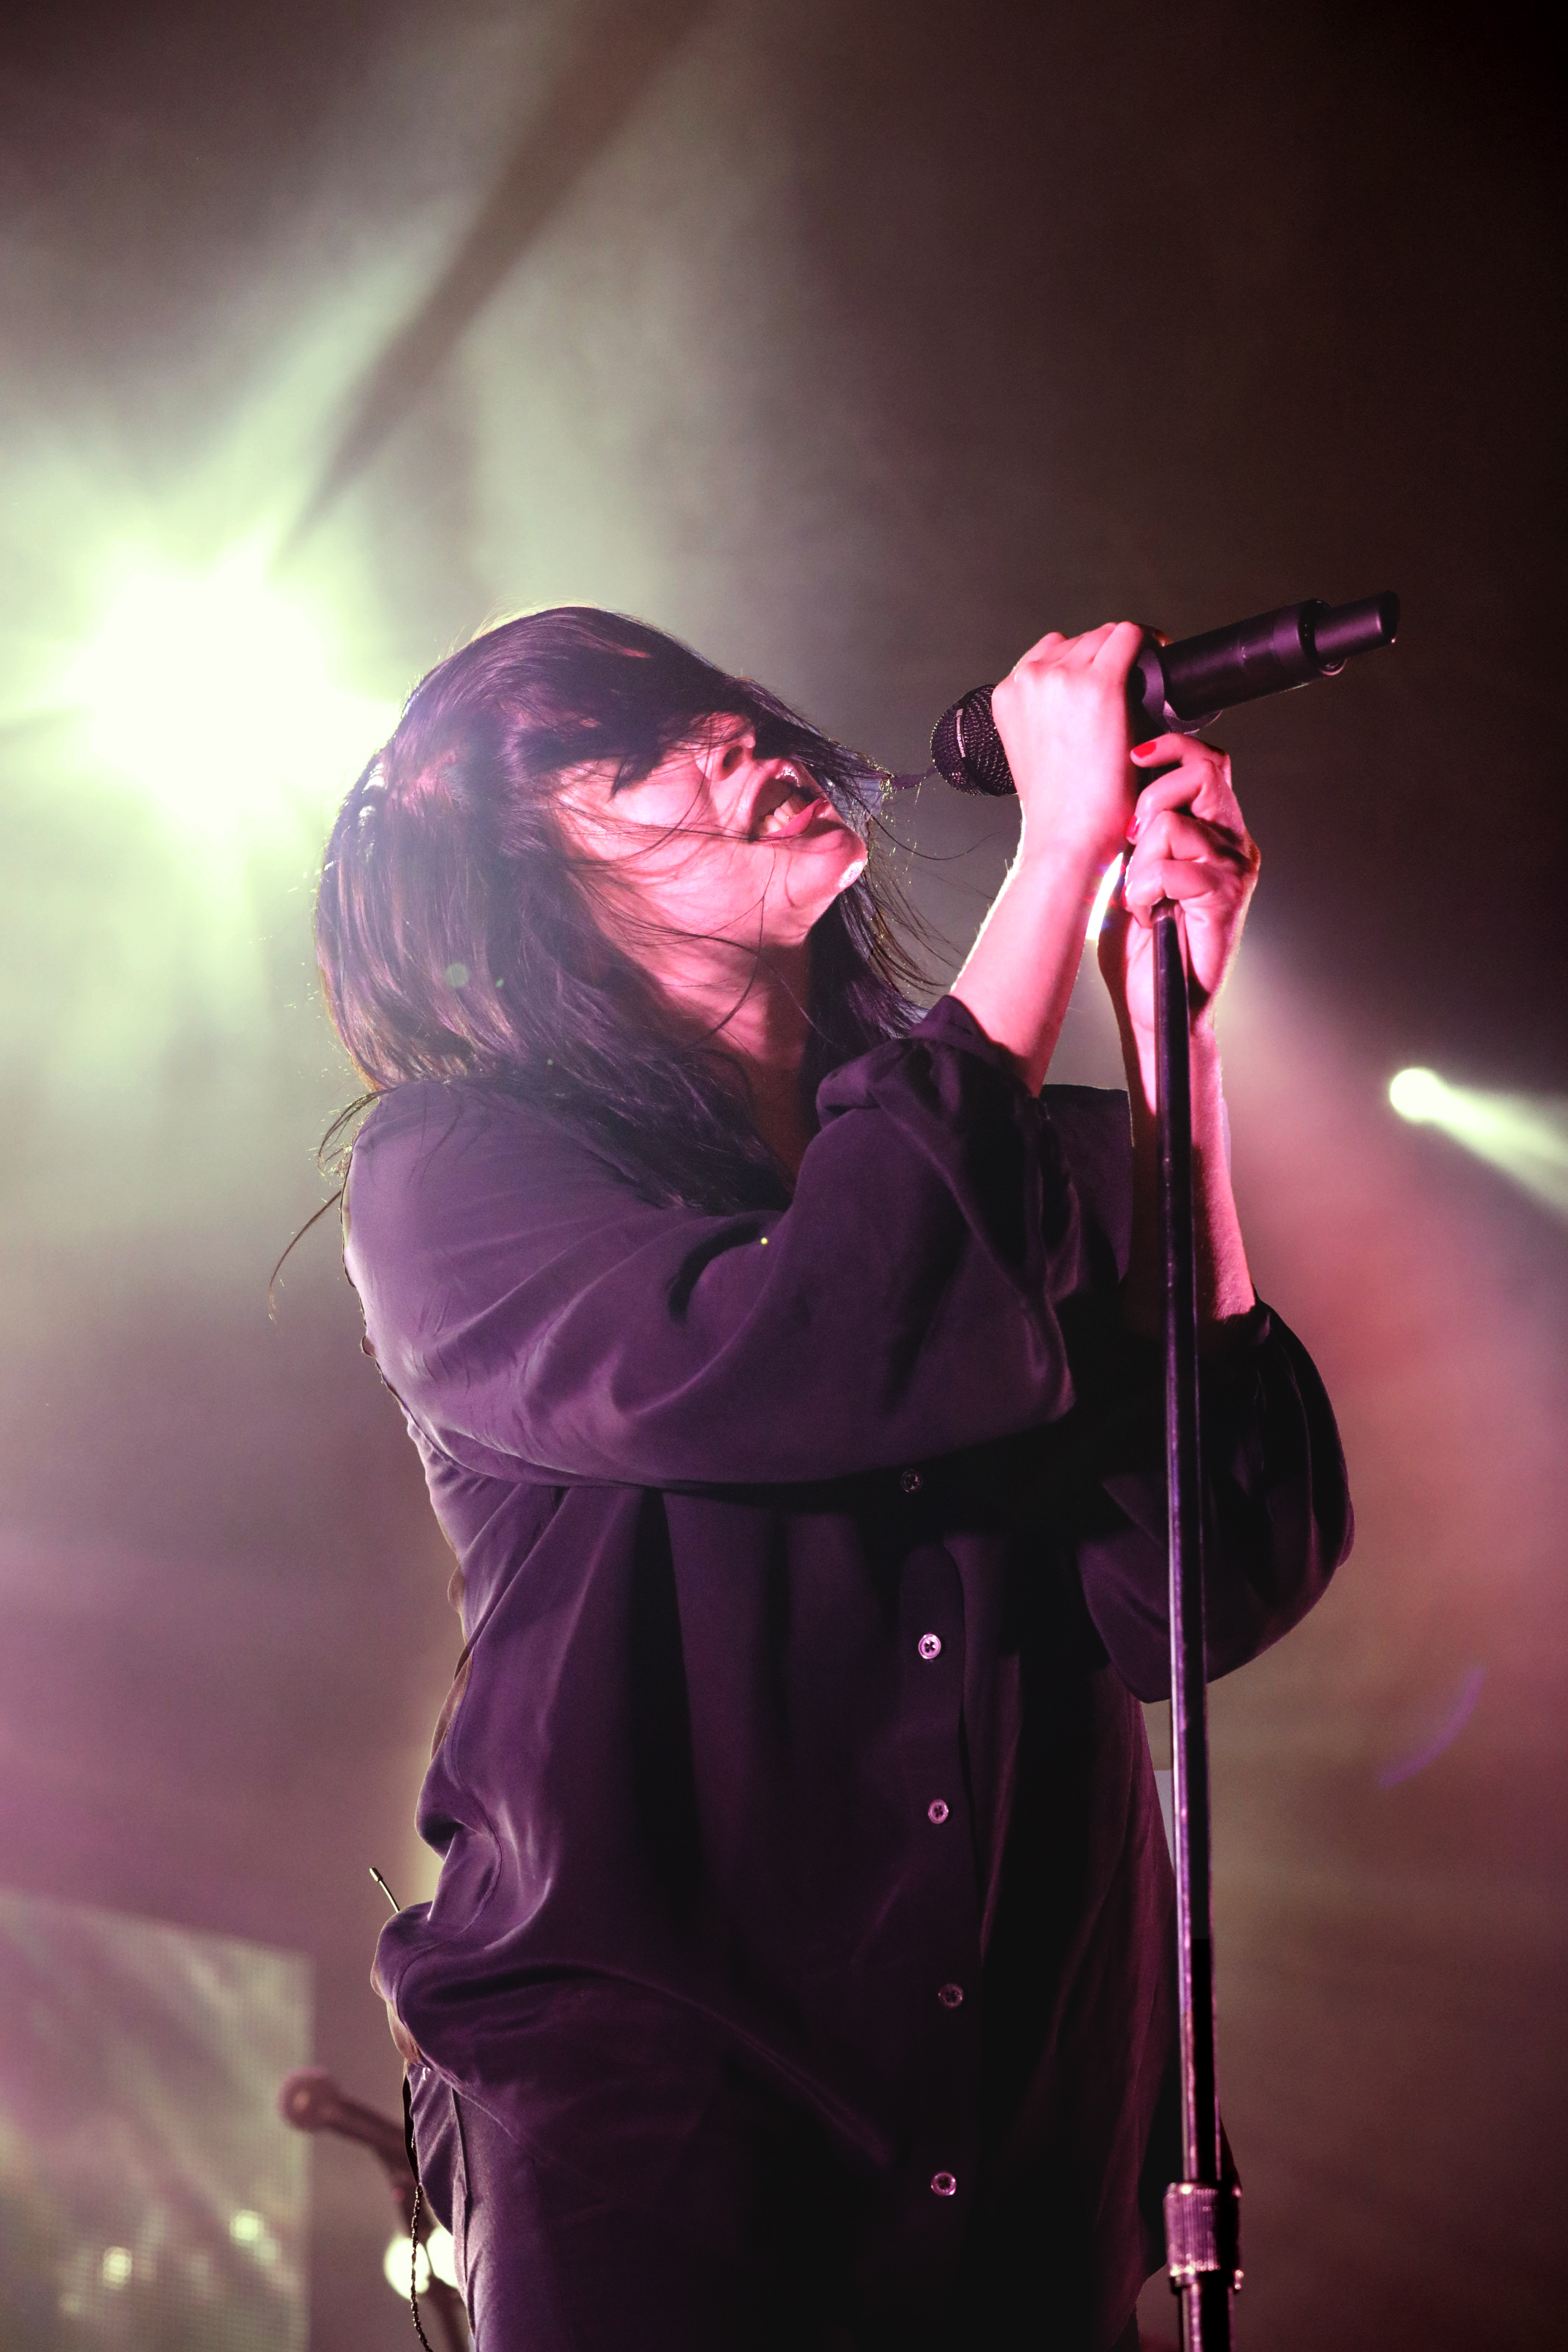 K.Flay Soaking it up in a bath of light and music.